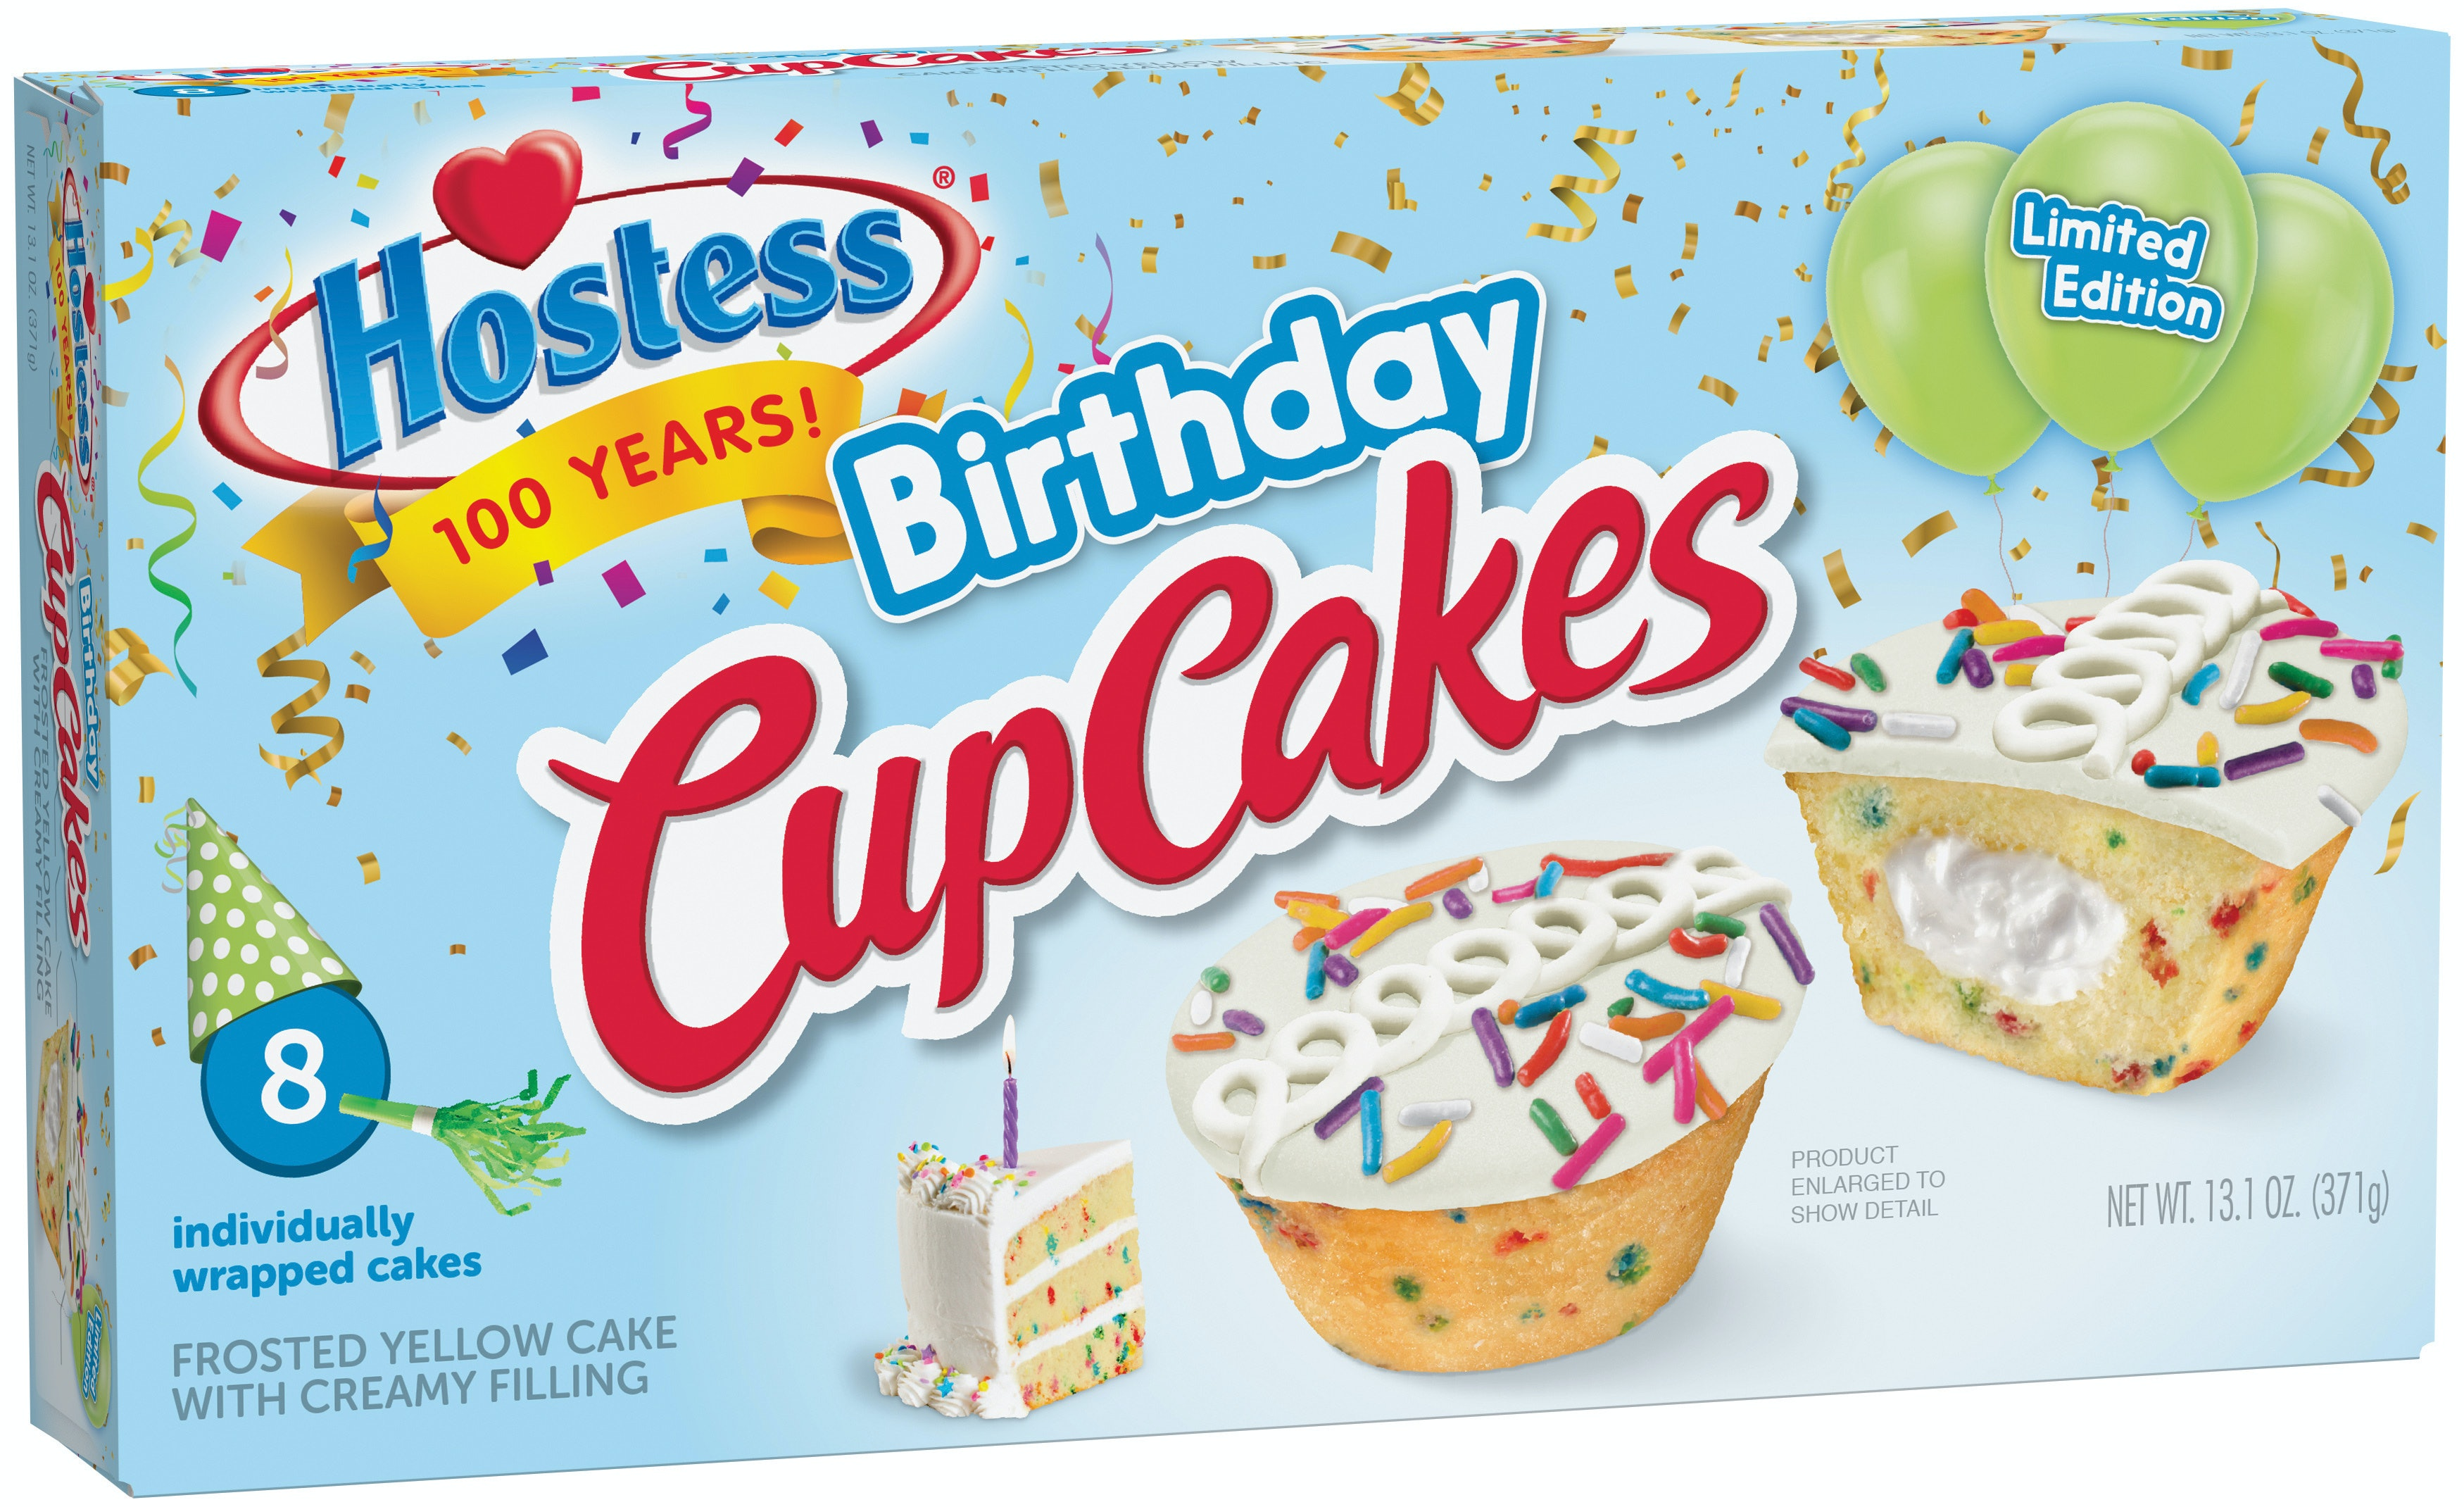 Superb Hostess Birthday Cupcakes Celebrate The Iconic Snack Cake Makers Personalised Birthday Cards Cominlily Jamesorg